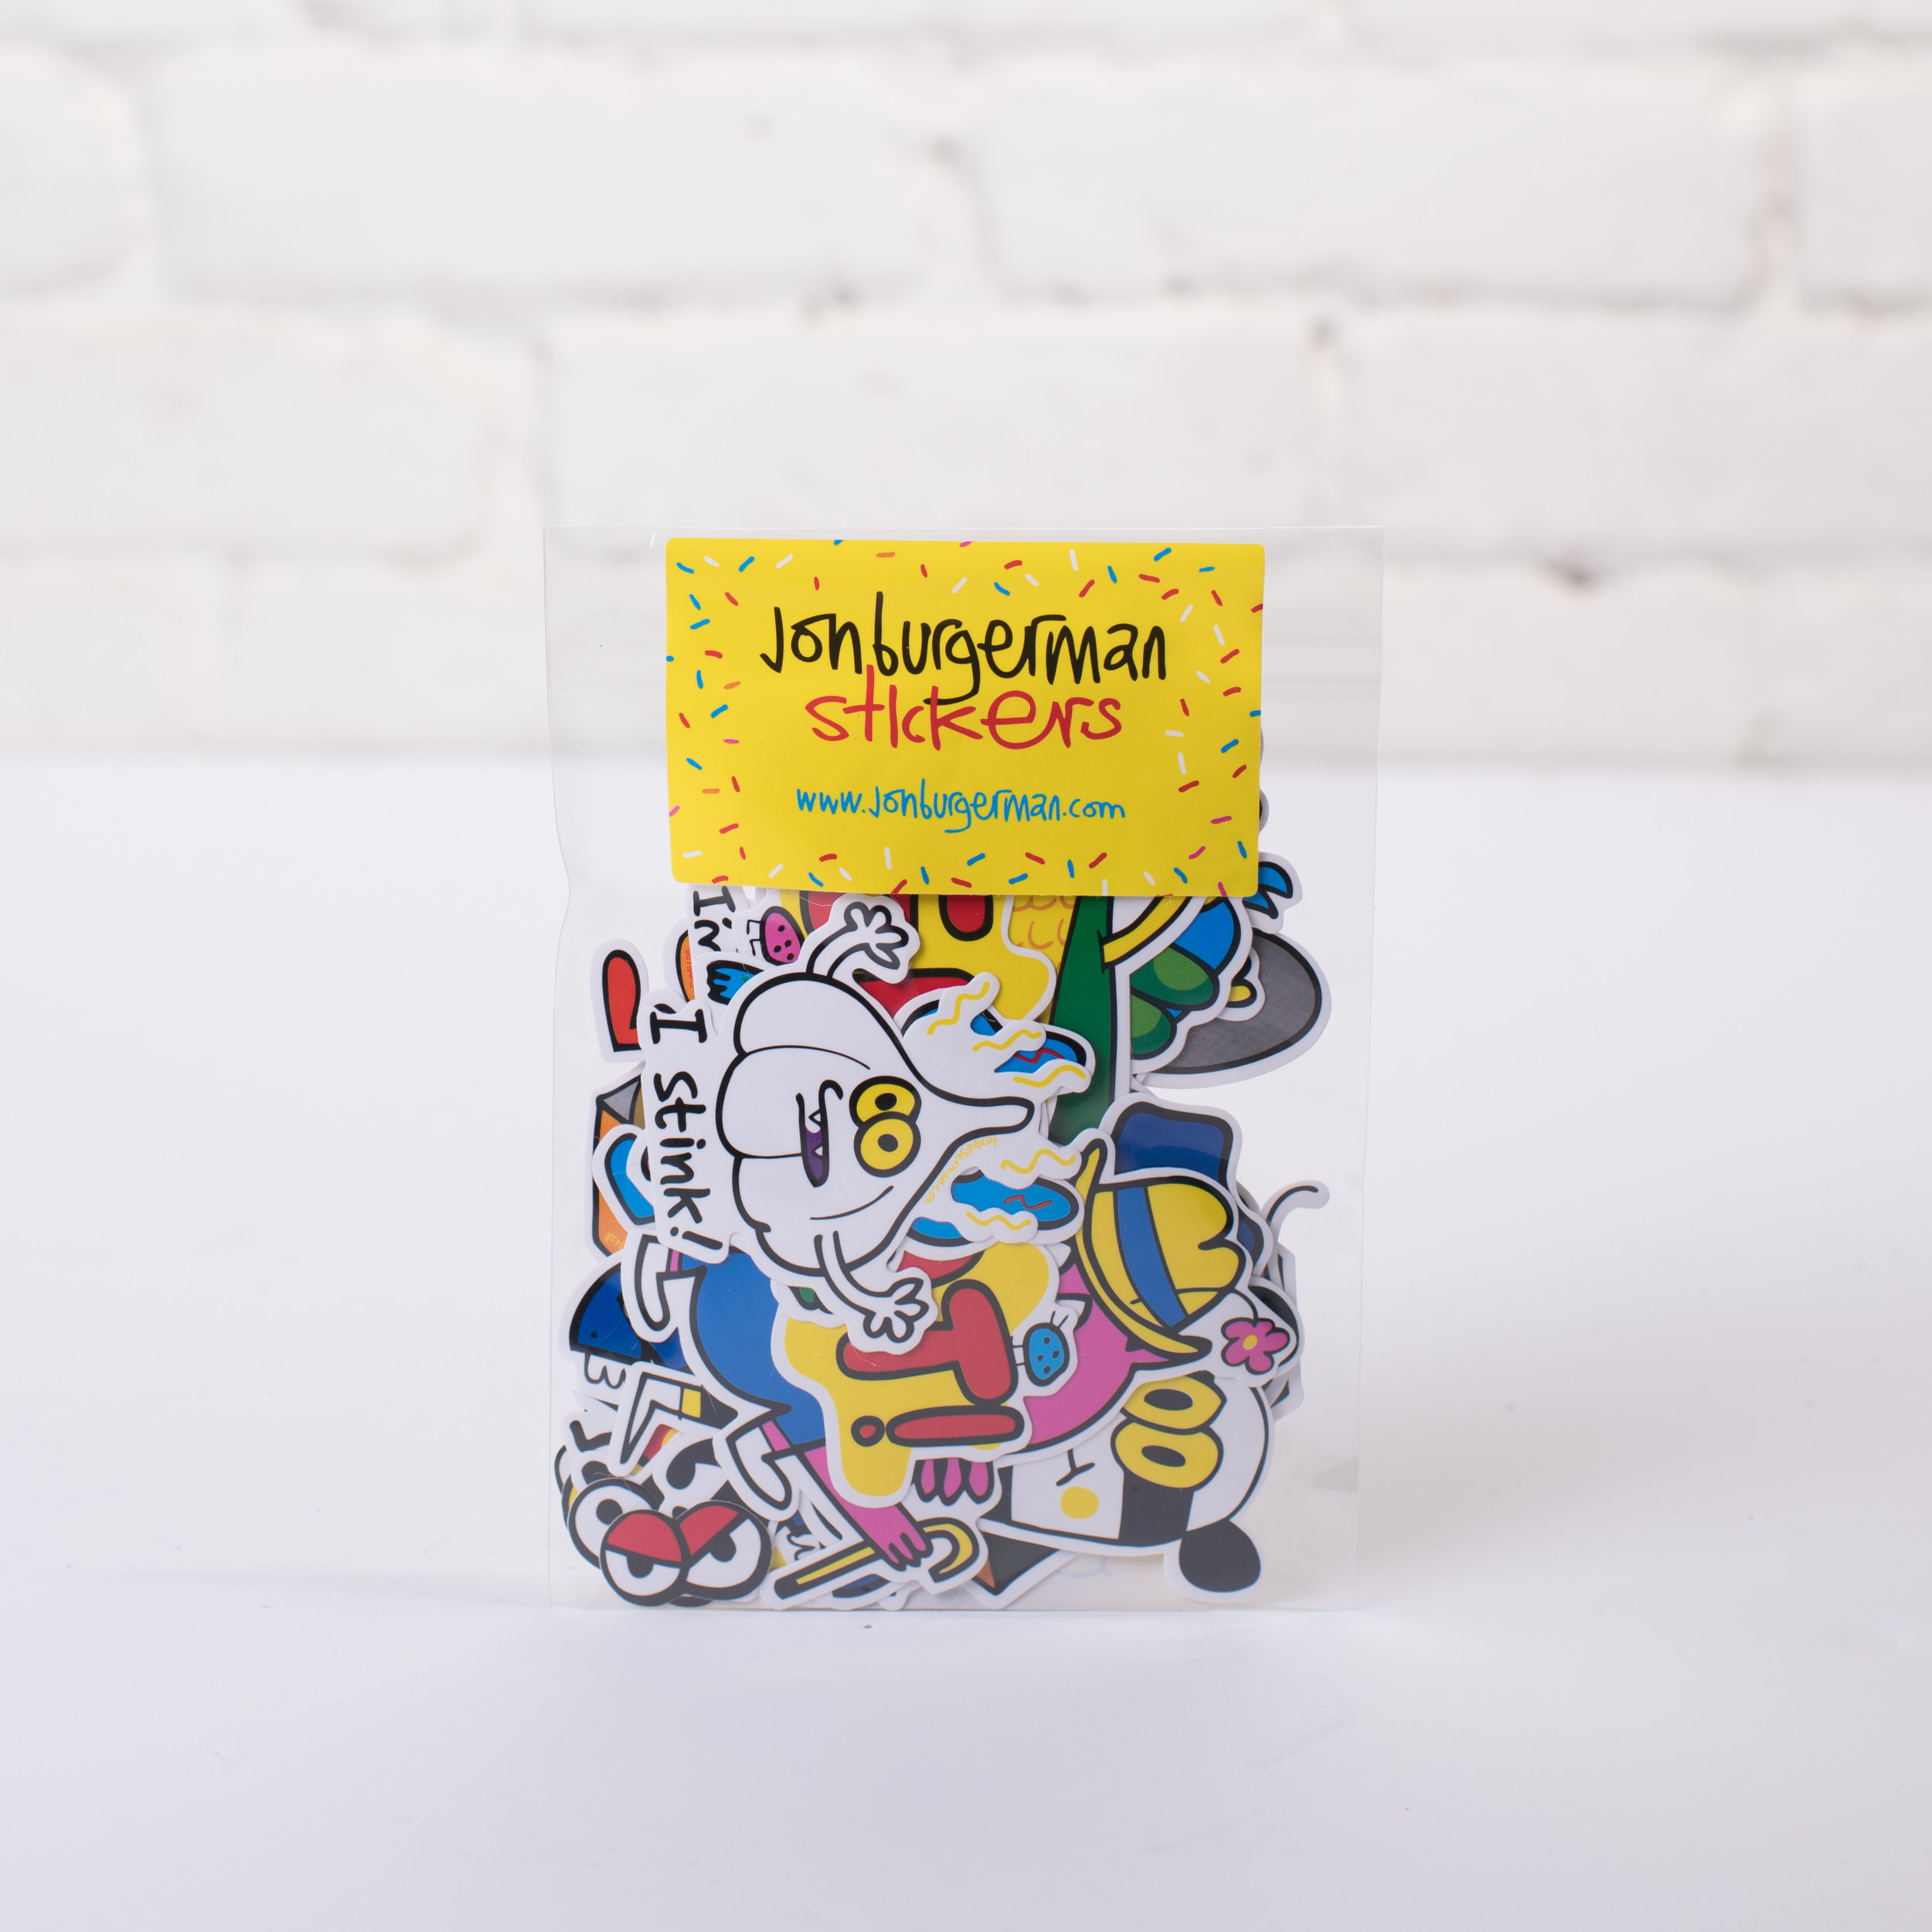 Jon Burgerman Holiday 2017 Sticker Pack